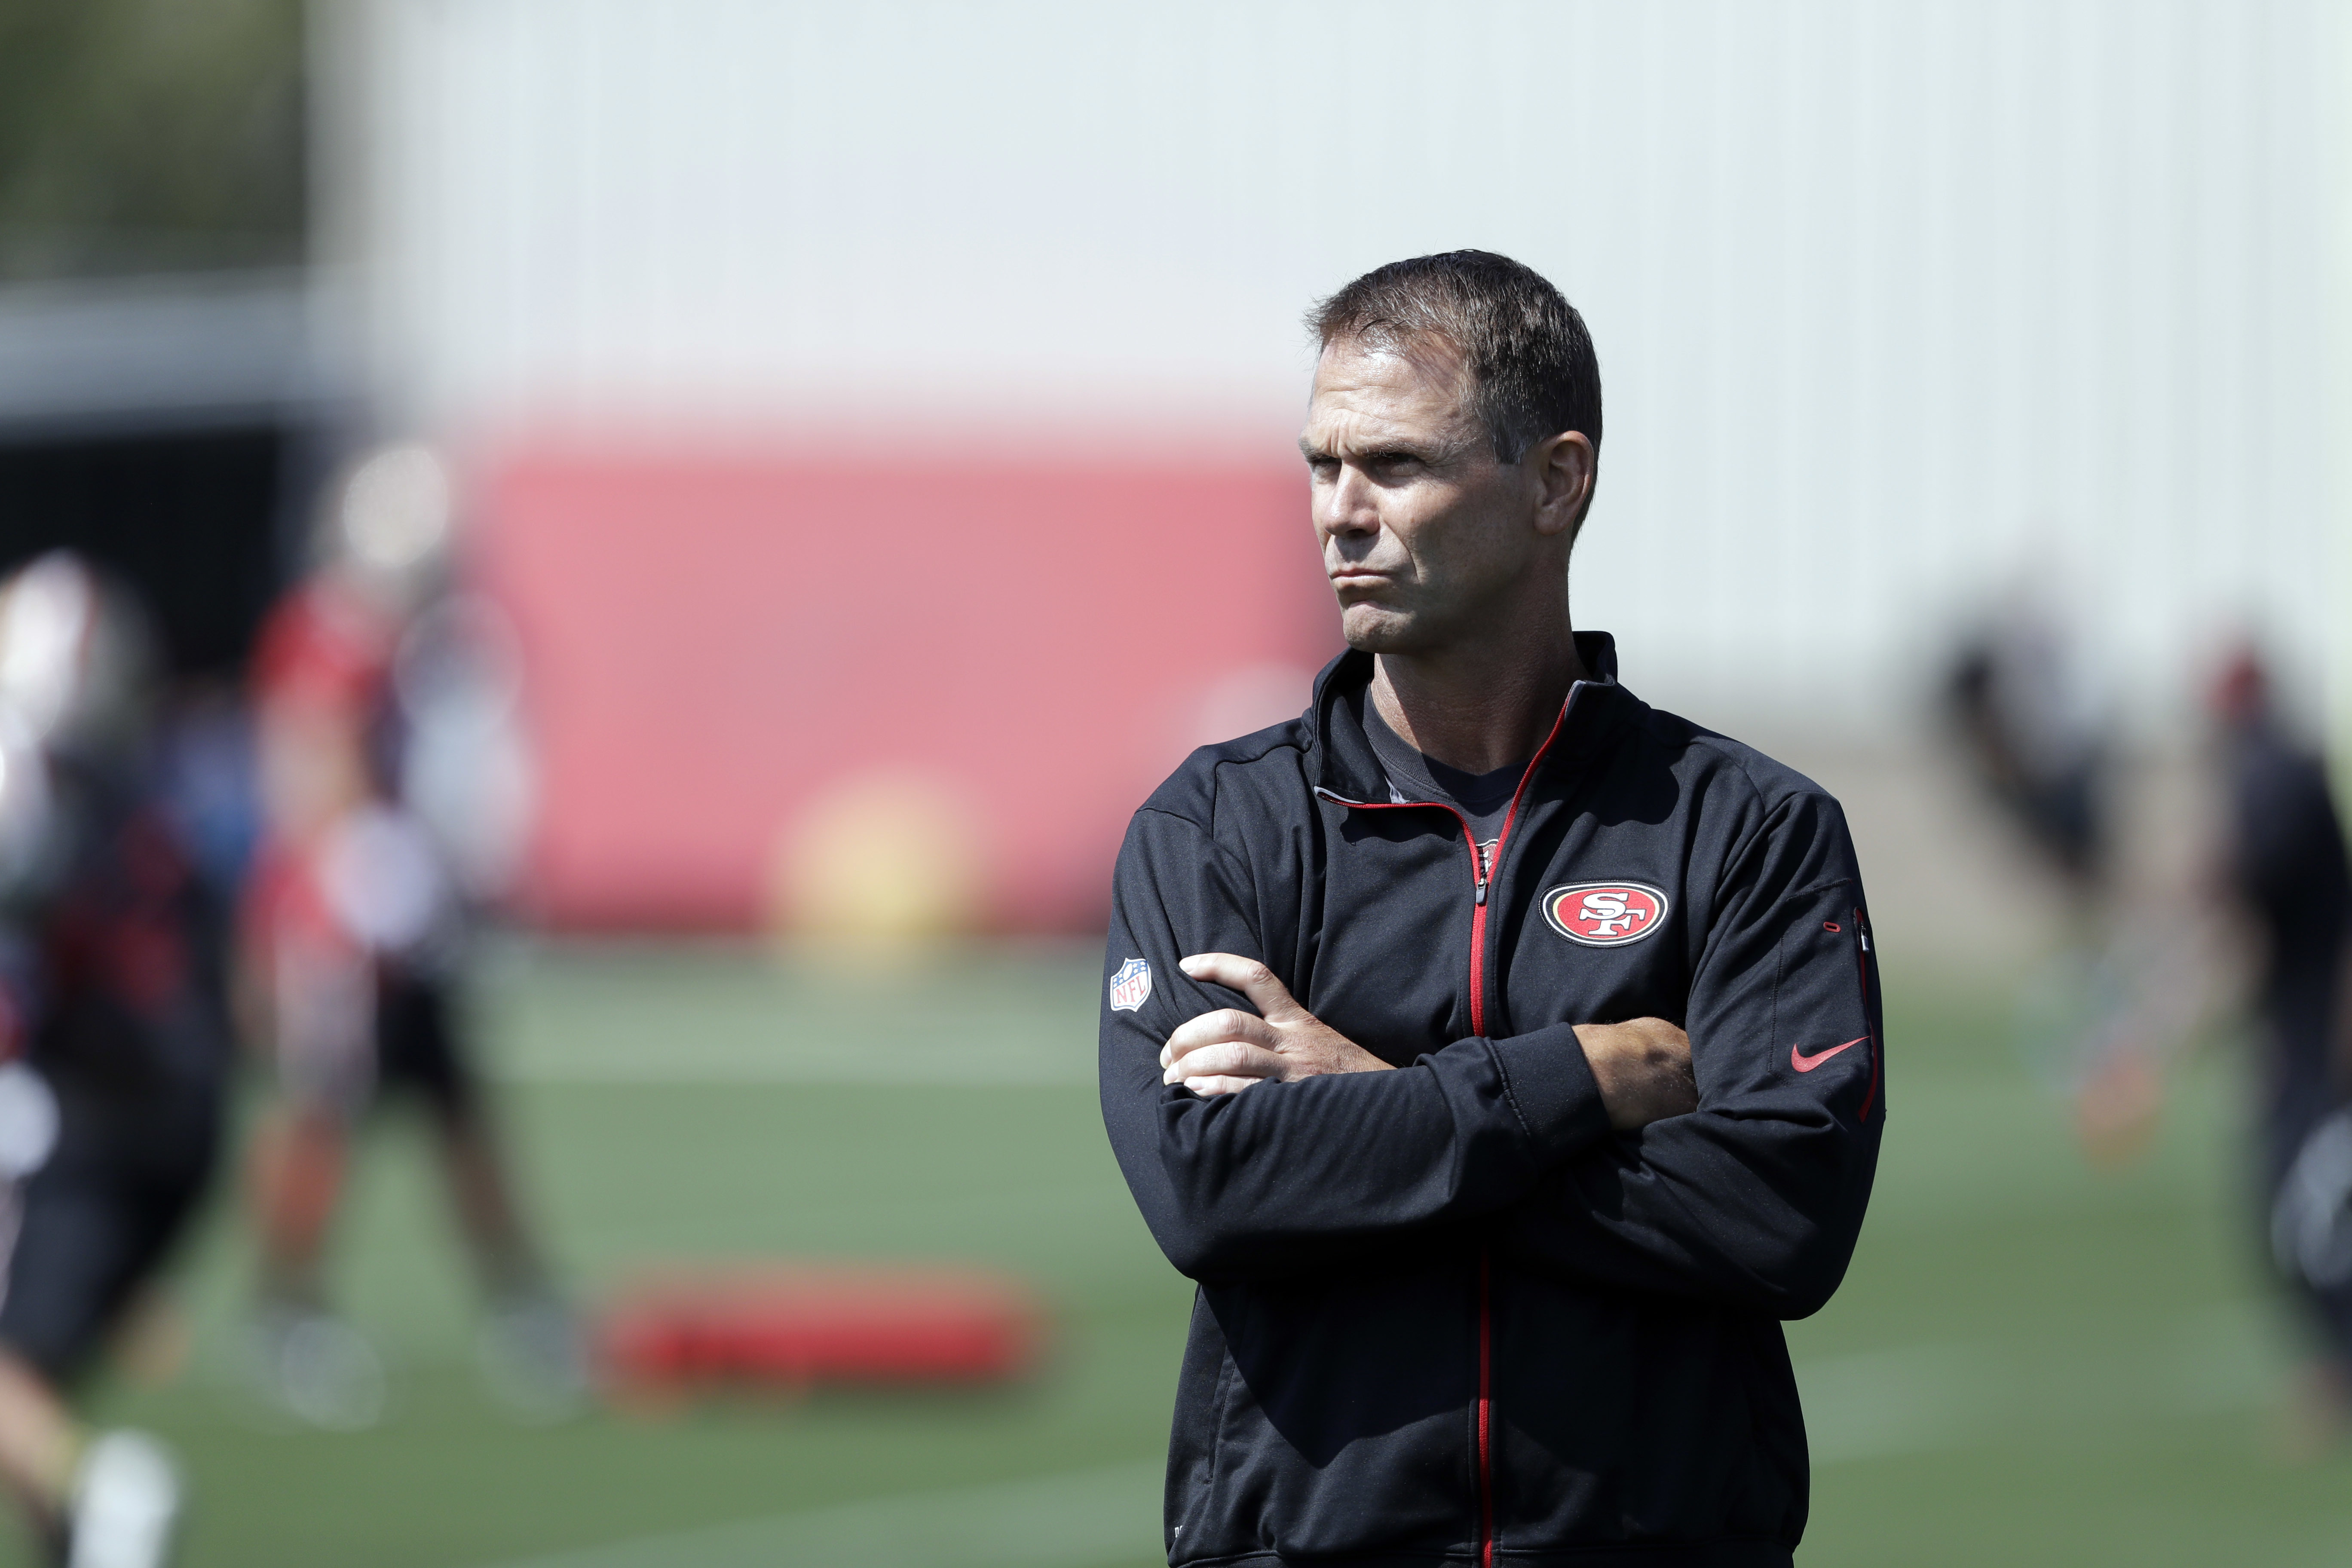 This July 31, 2016, photo shows San Francisco 49ers general manager Trent Baalke during NFL football training camp in Santa Clara, Calif. Fresh off his team's sixth straight loss, San Francisco linebacker Aaron Lynch made a bold proclamation that the 49er